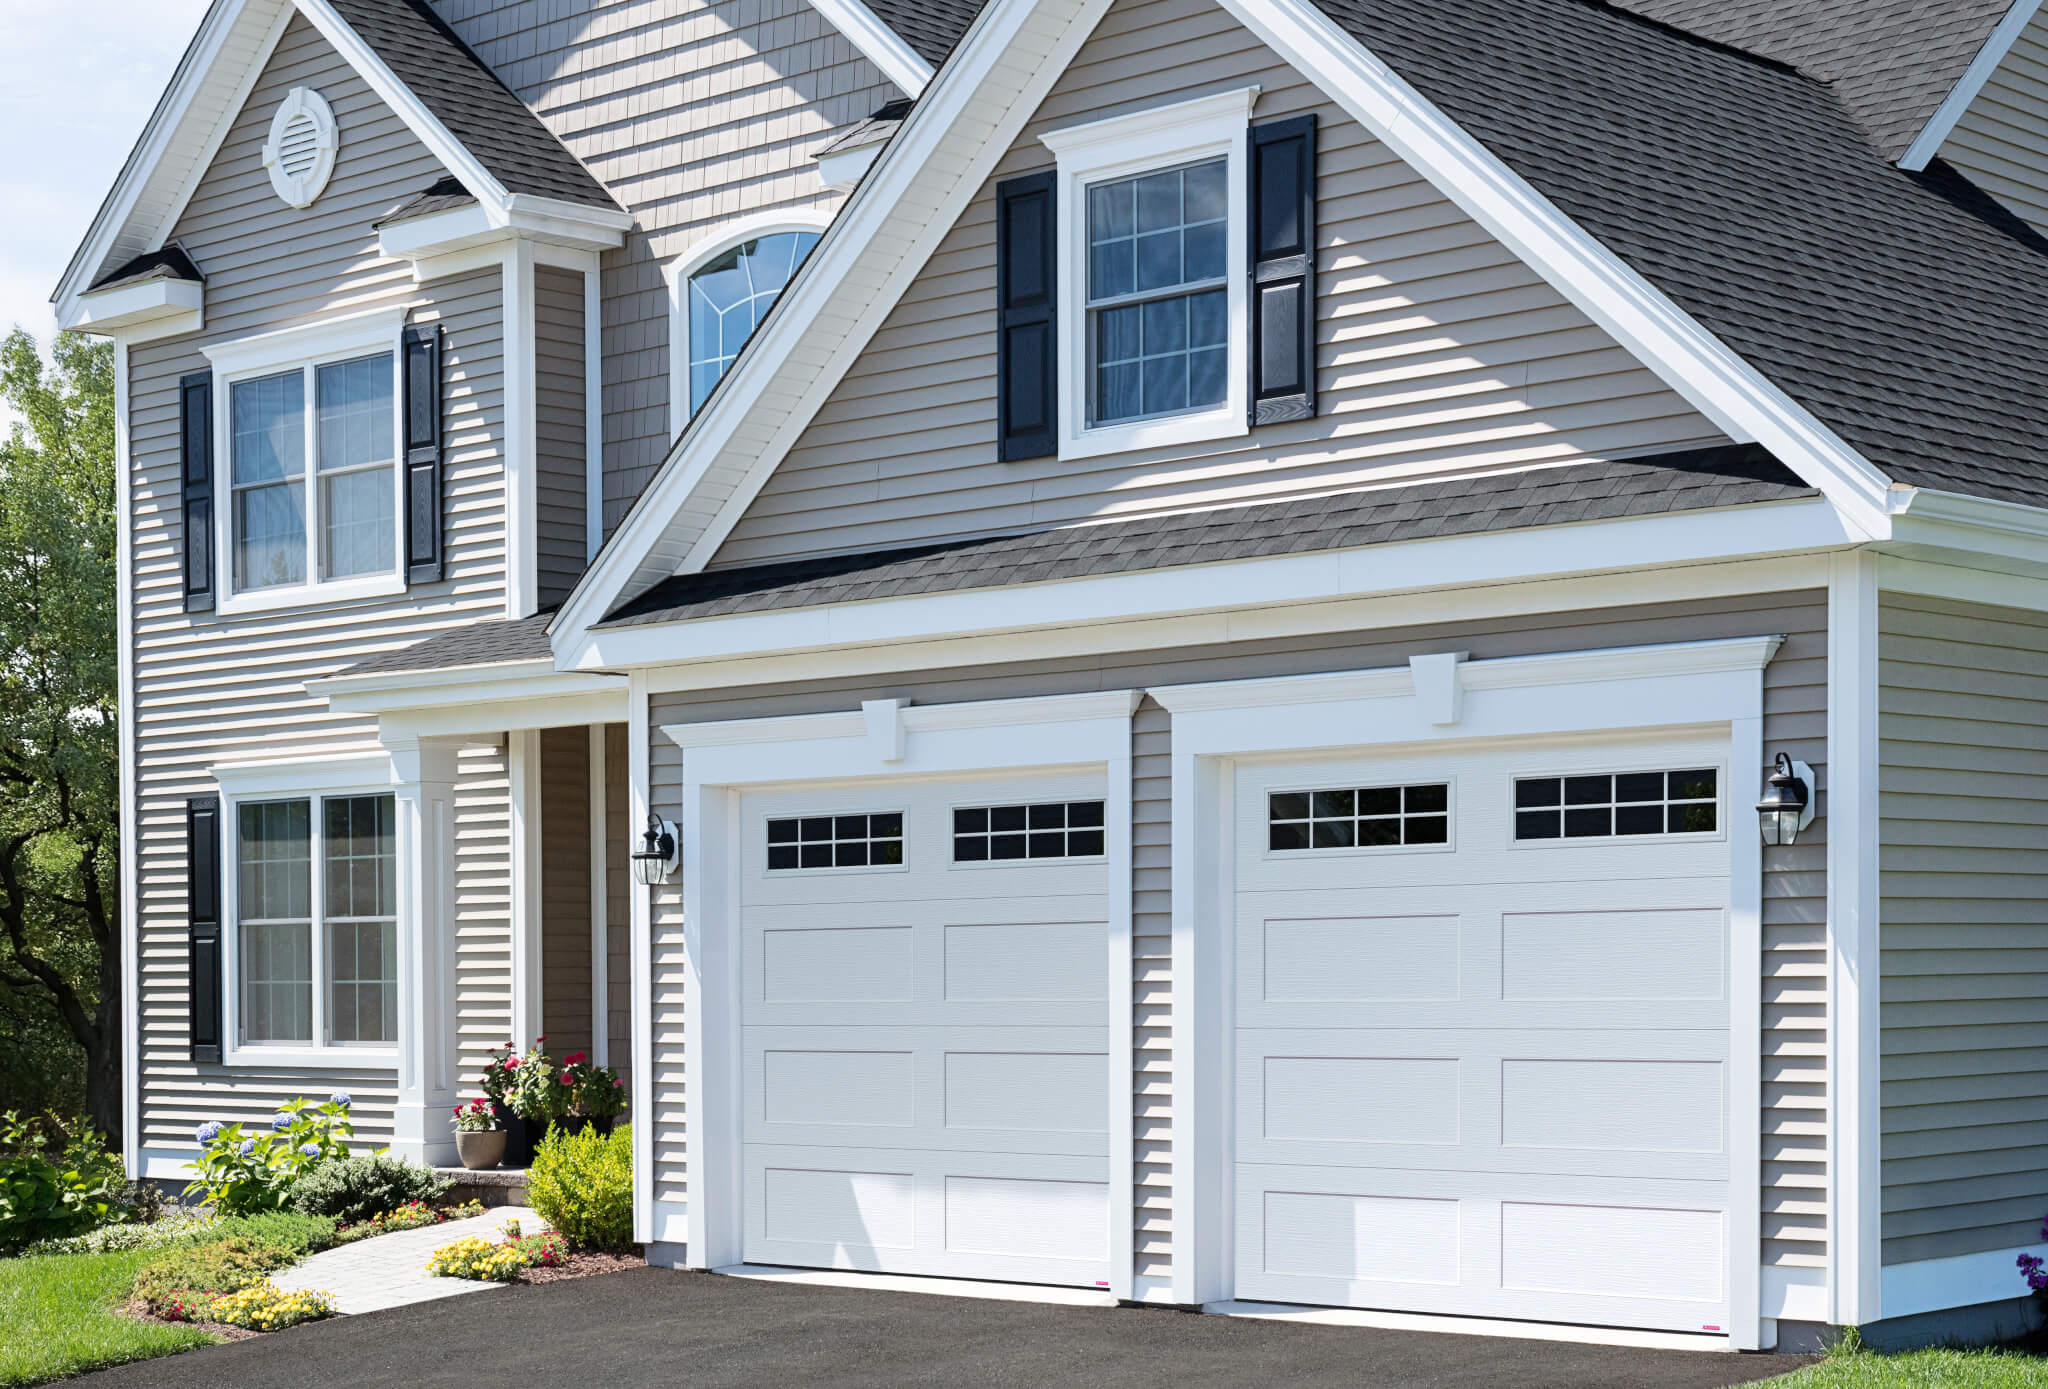 a grey house with double white garage doors